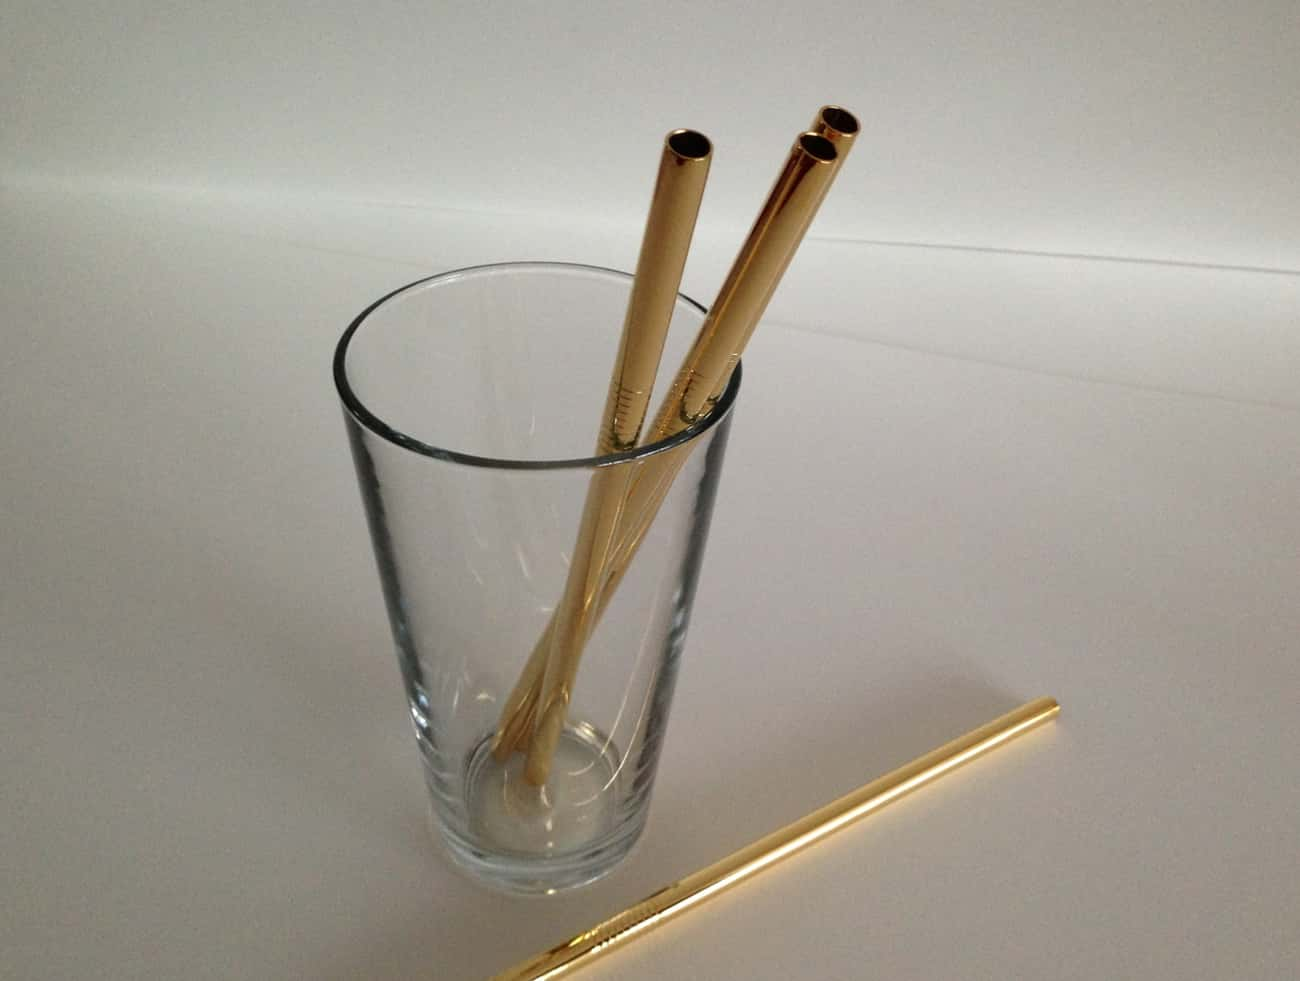 24K Gold Straws is listed (or ranked) 3 on the list 24 Everyday Things You Can Buy Made Of Real Gold